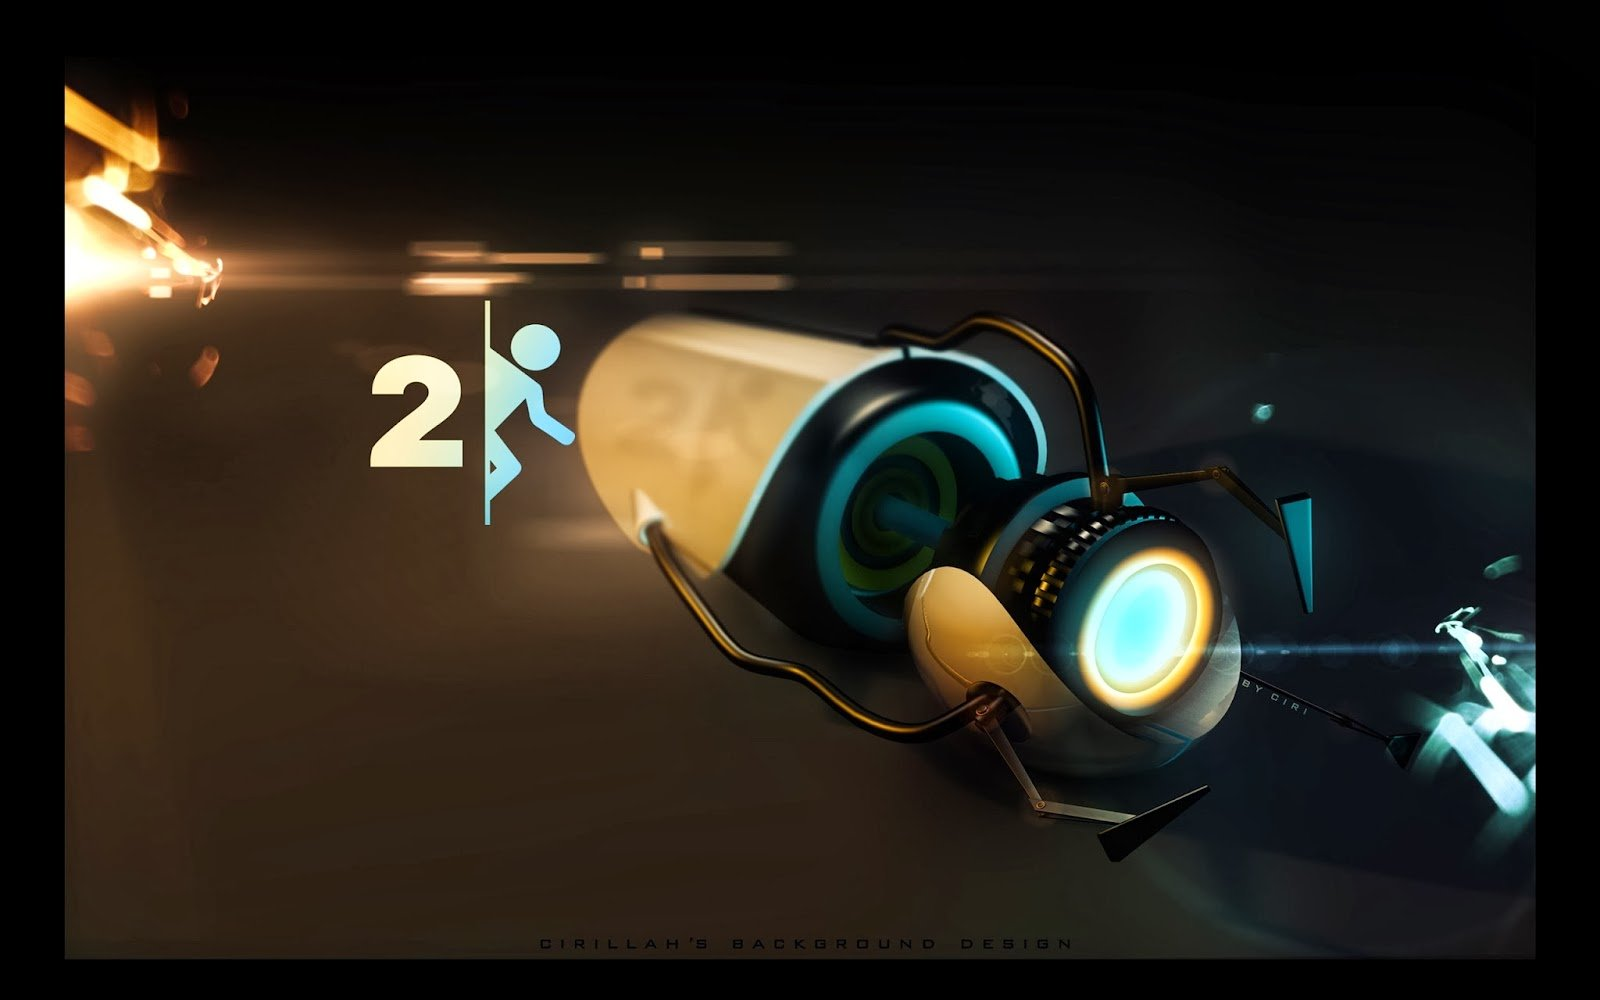 Portal 2 background wallpapersafari for 3 portals